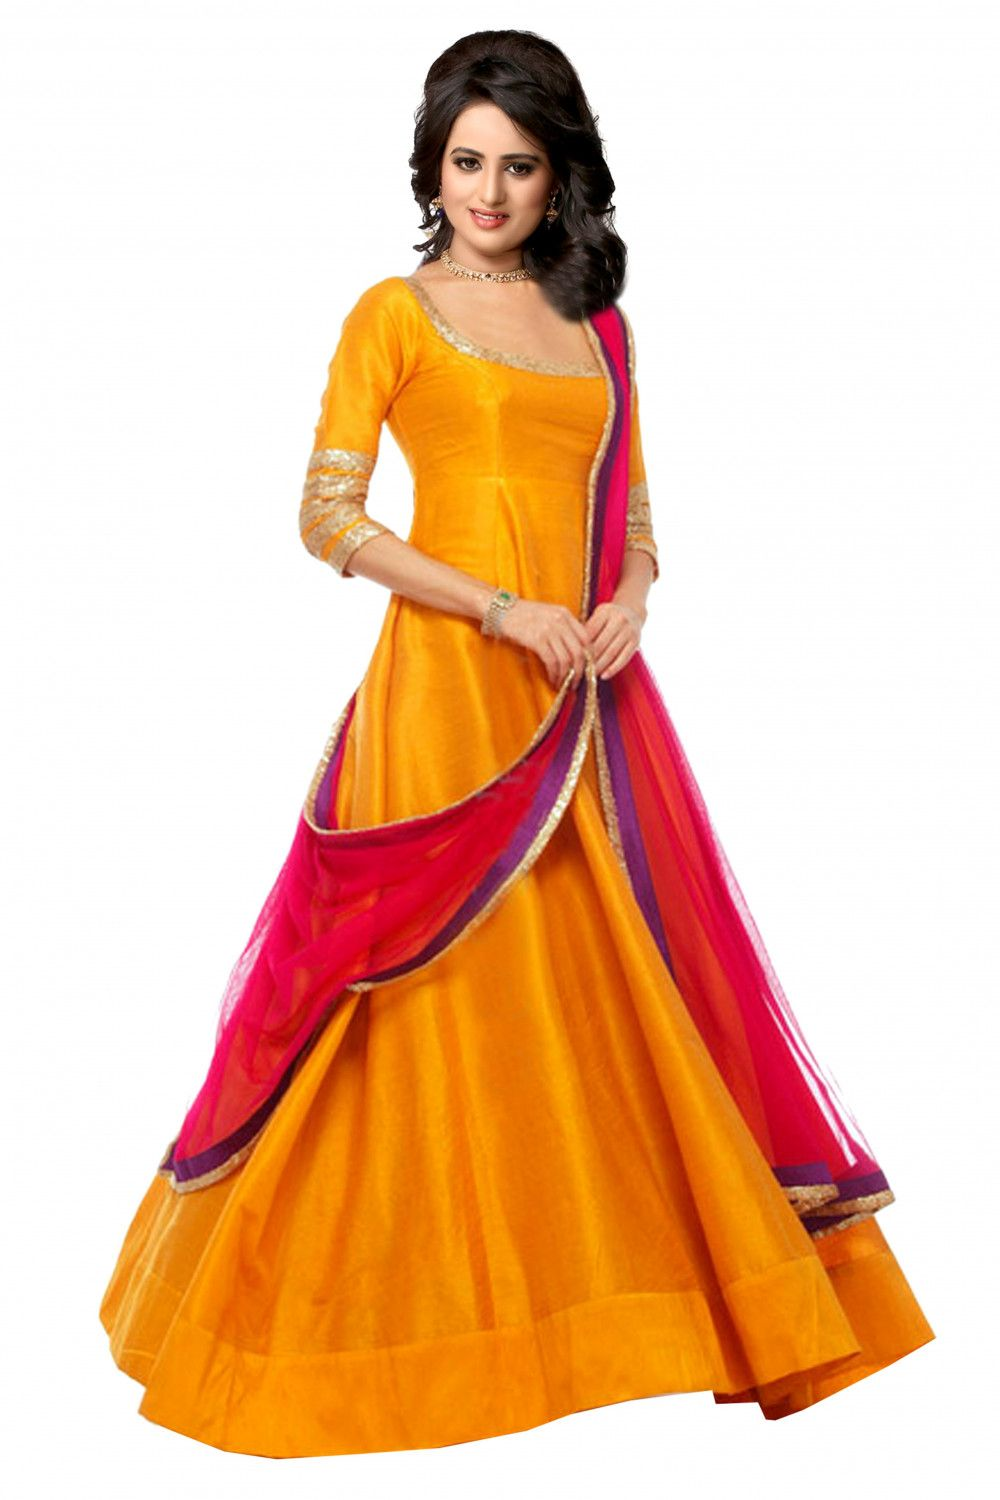 0d656d35b32 Love wearing silk because of its grace and elegance  Checkout this gorgeous  mustard banglori silk anarkali dress from Kraftly and fall in love  instantly.